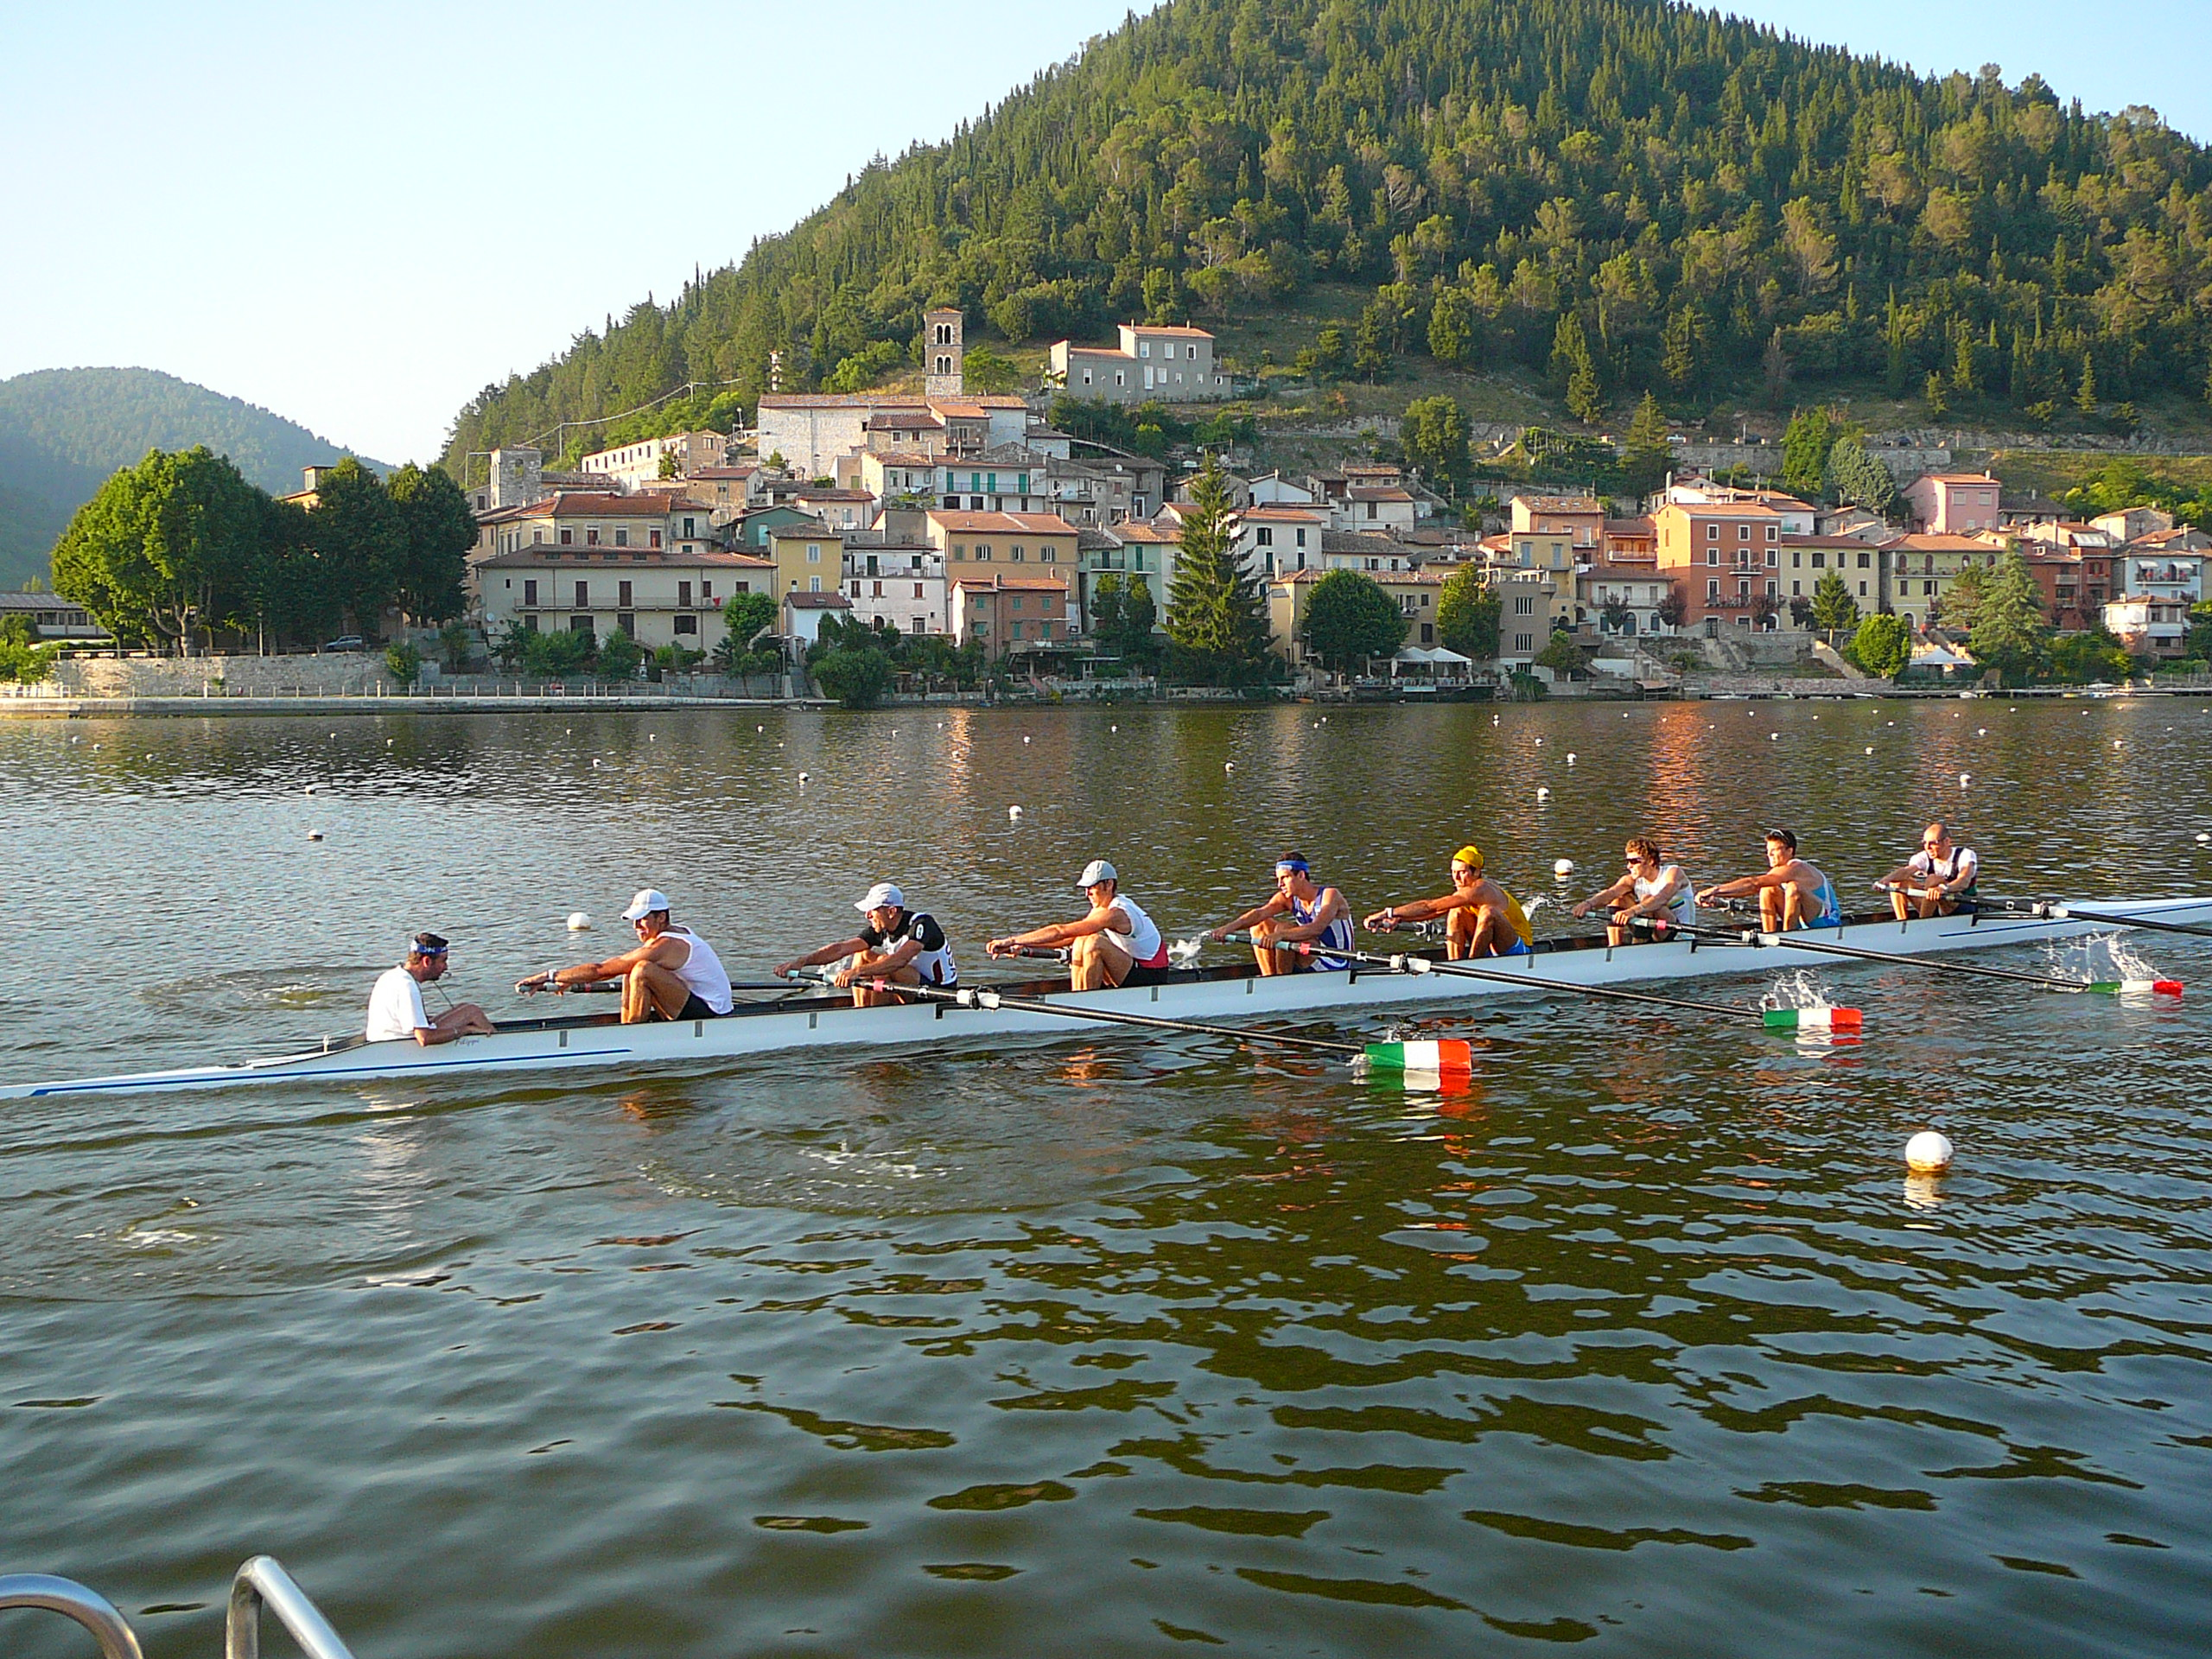 Rowing on Lake Piediluco